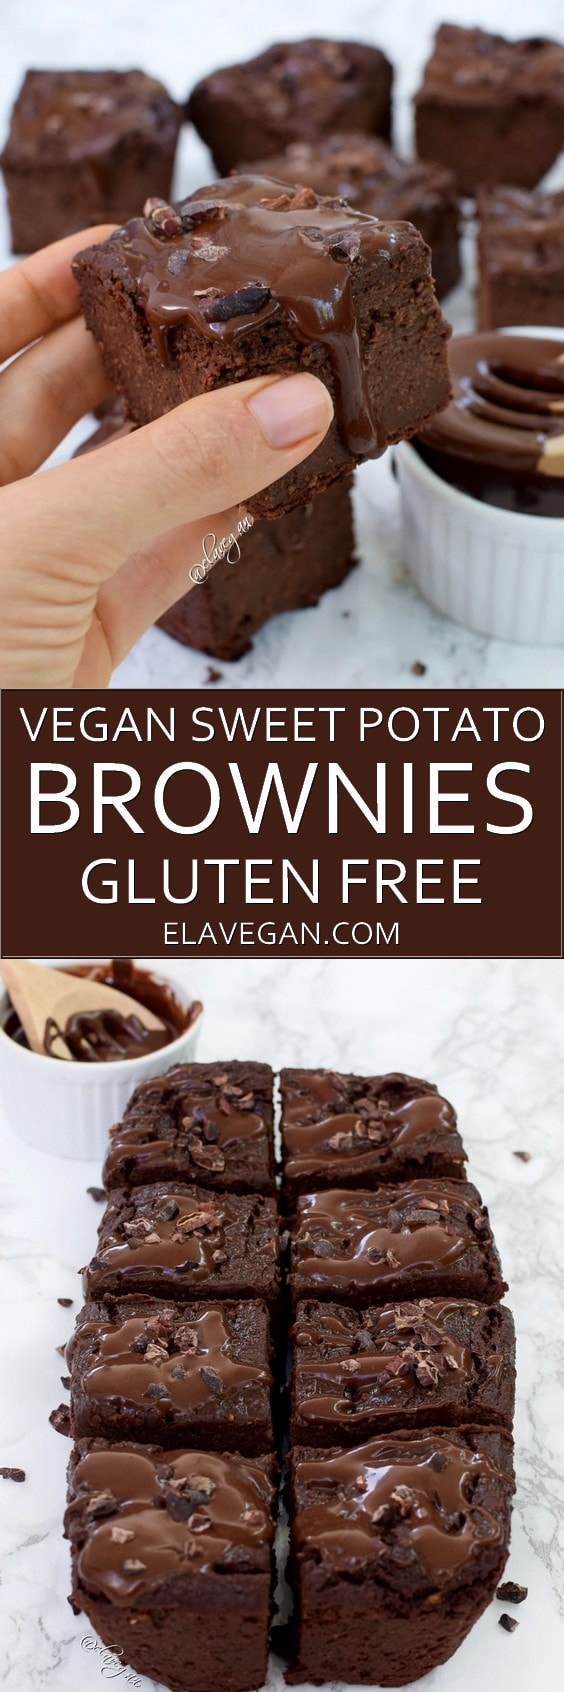 Vegan sweet potato brownies with a gluten-free chocolate spread. Gluten-free oil-free recipe.